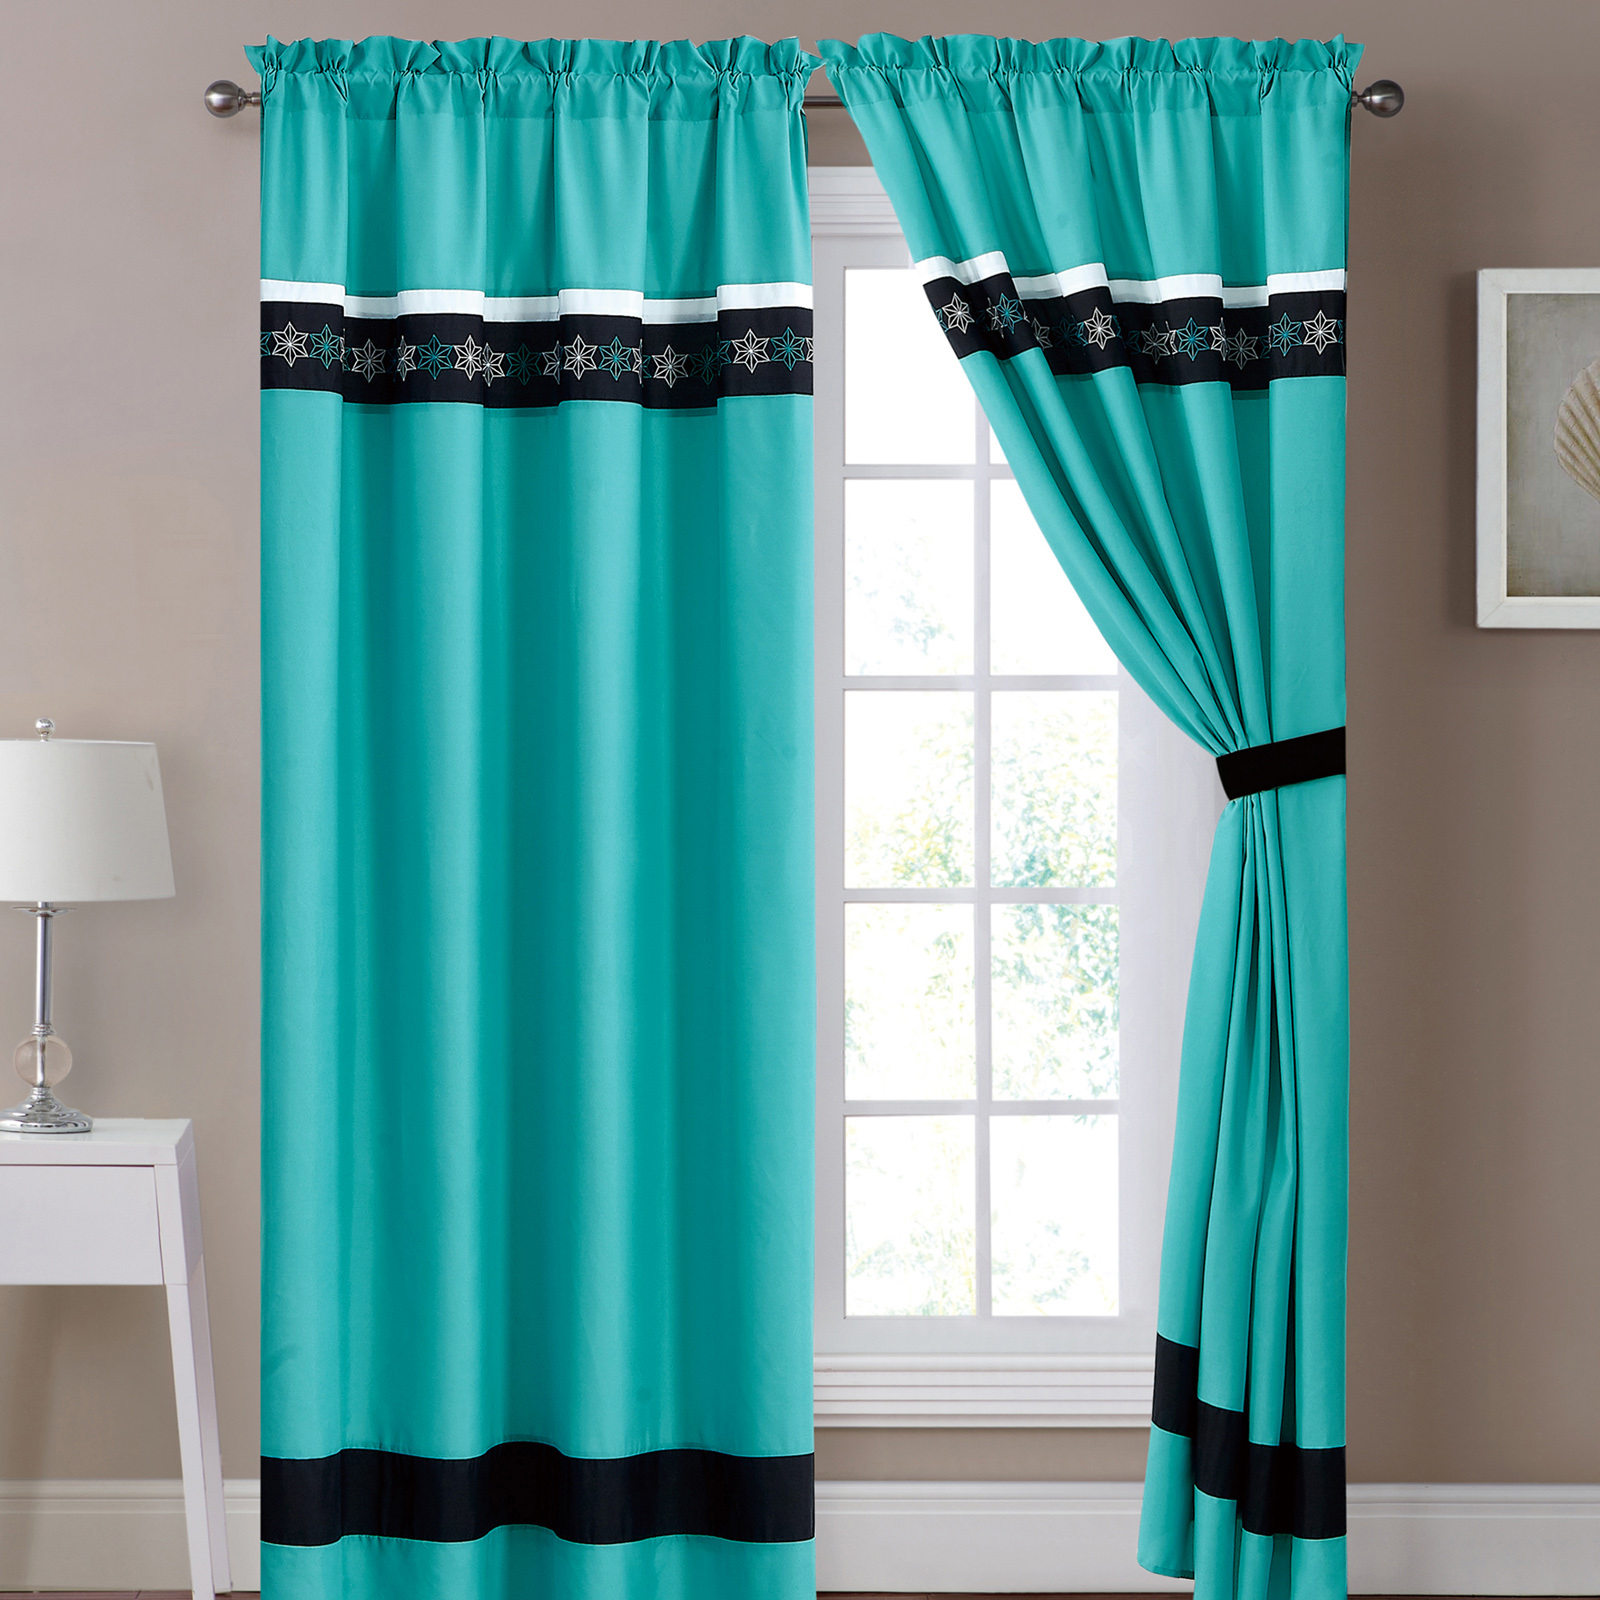 4-Pc Heike Star Hexagram Snowflake Curtain Set Turquoise